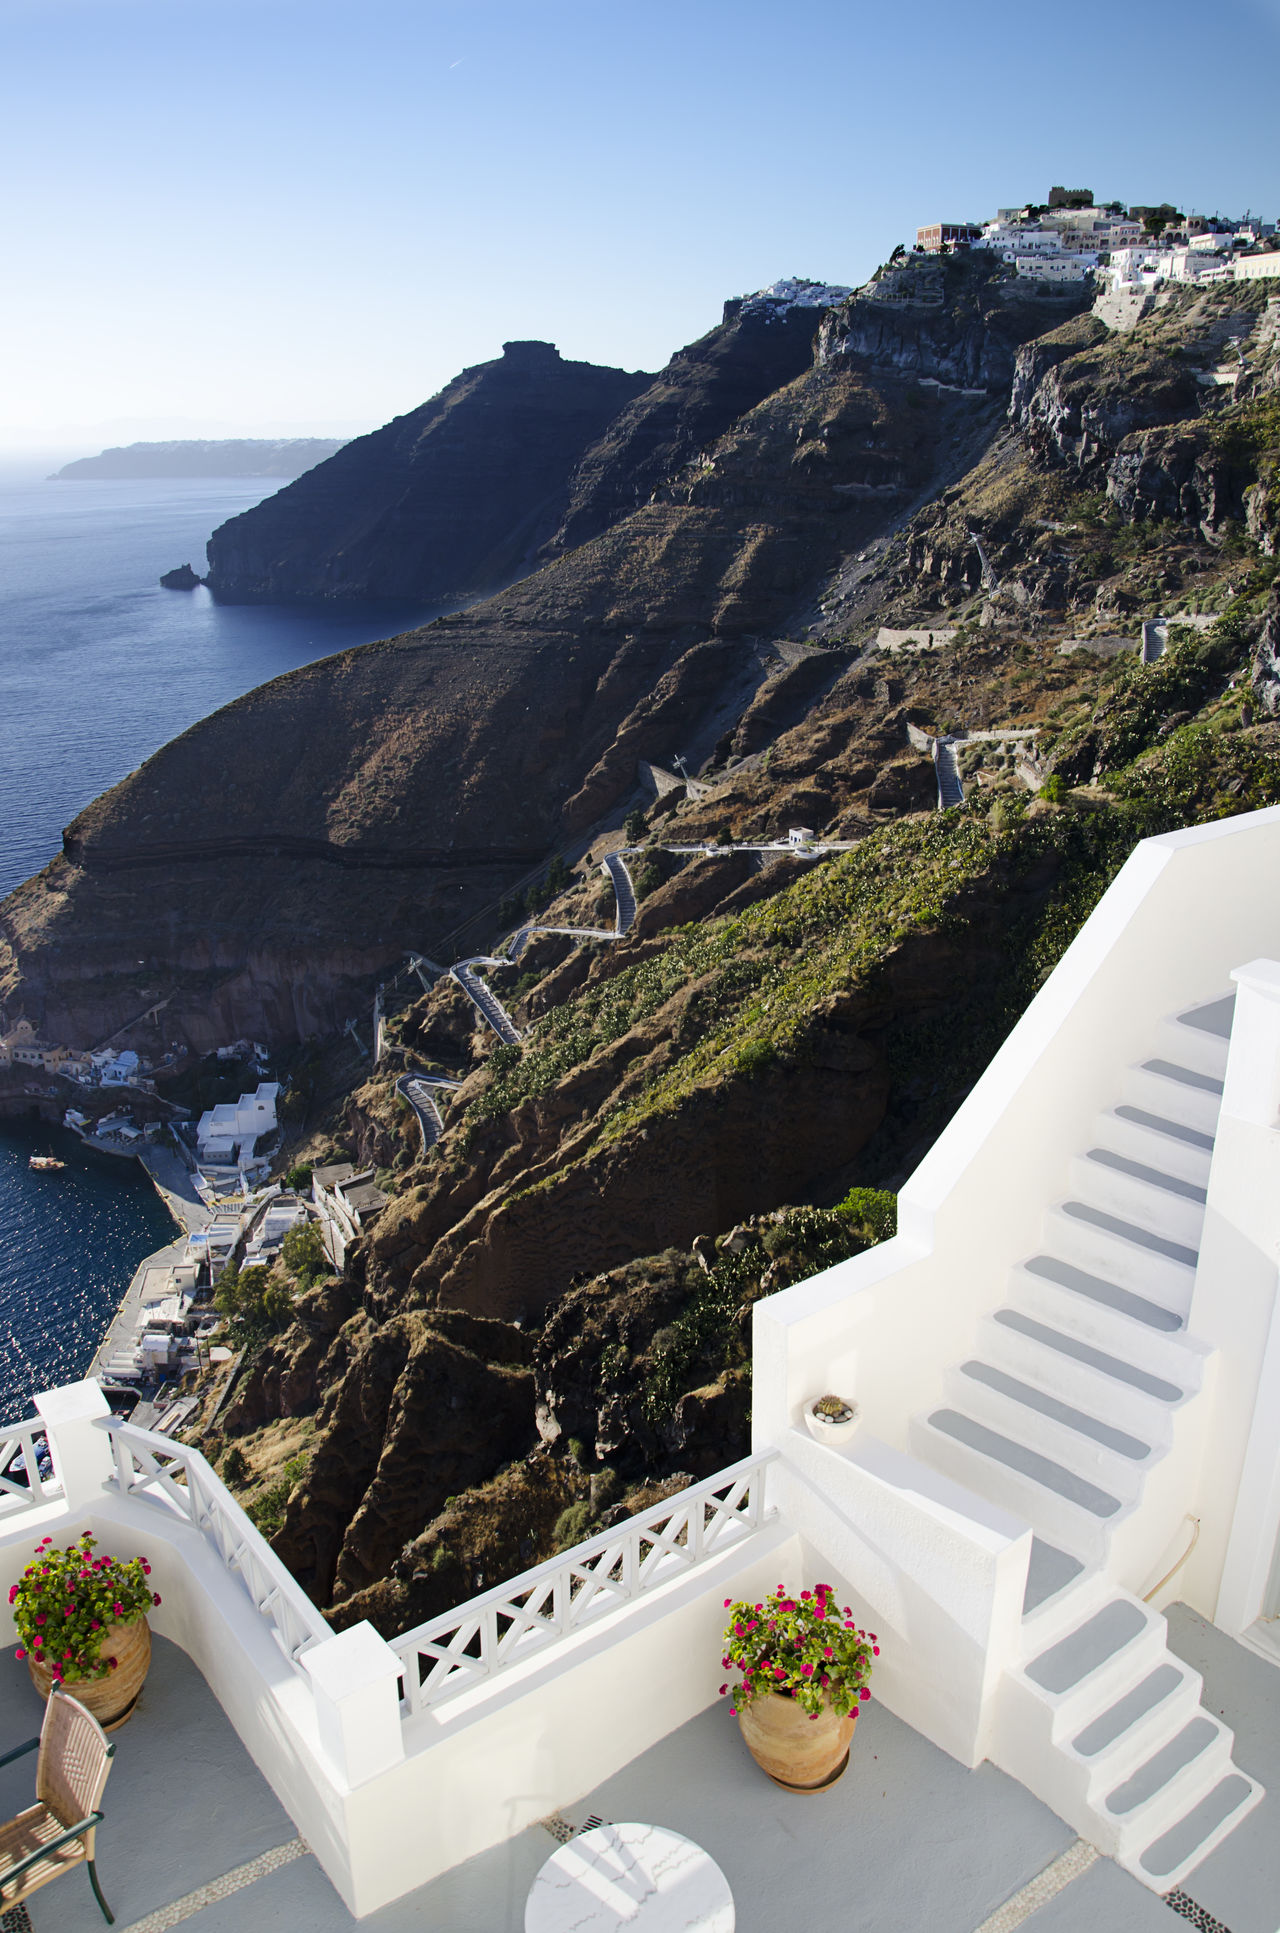 Aegean Sea Beautiful Views Cliffs Cliffside Greece Islands Santorini Greece Santorini Island Sea Views